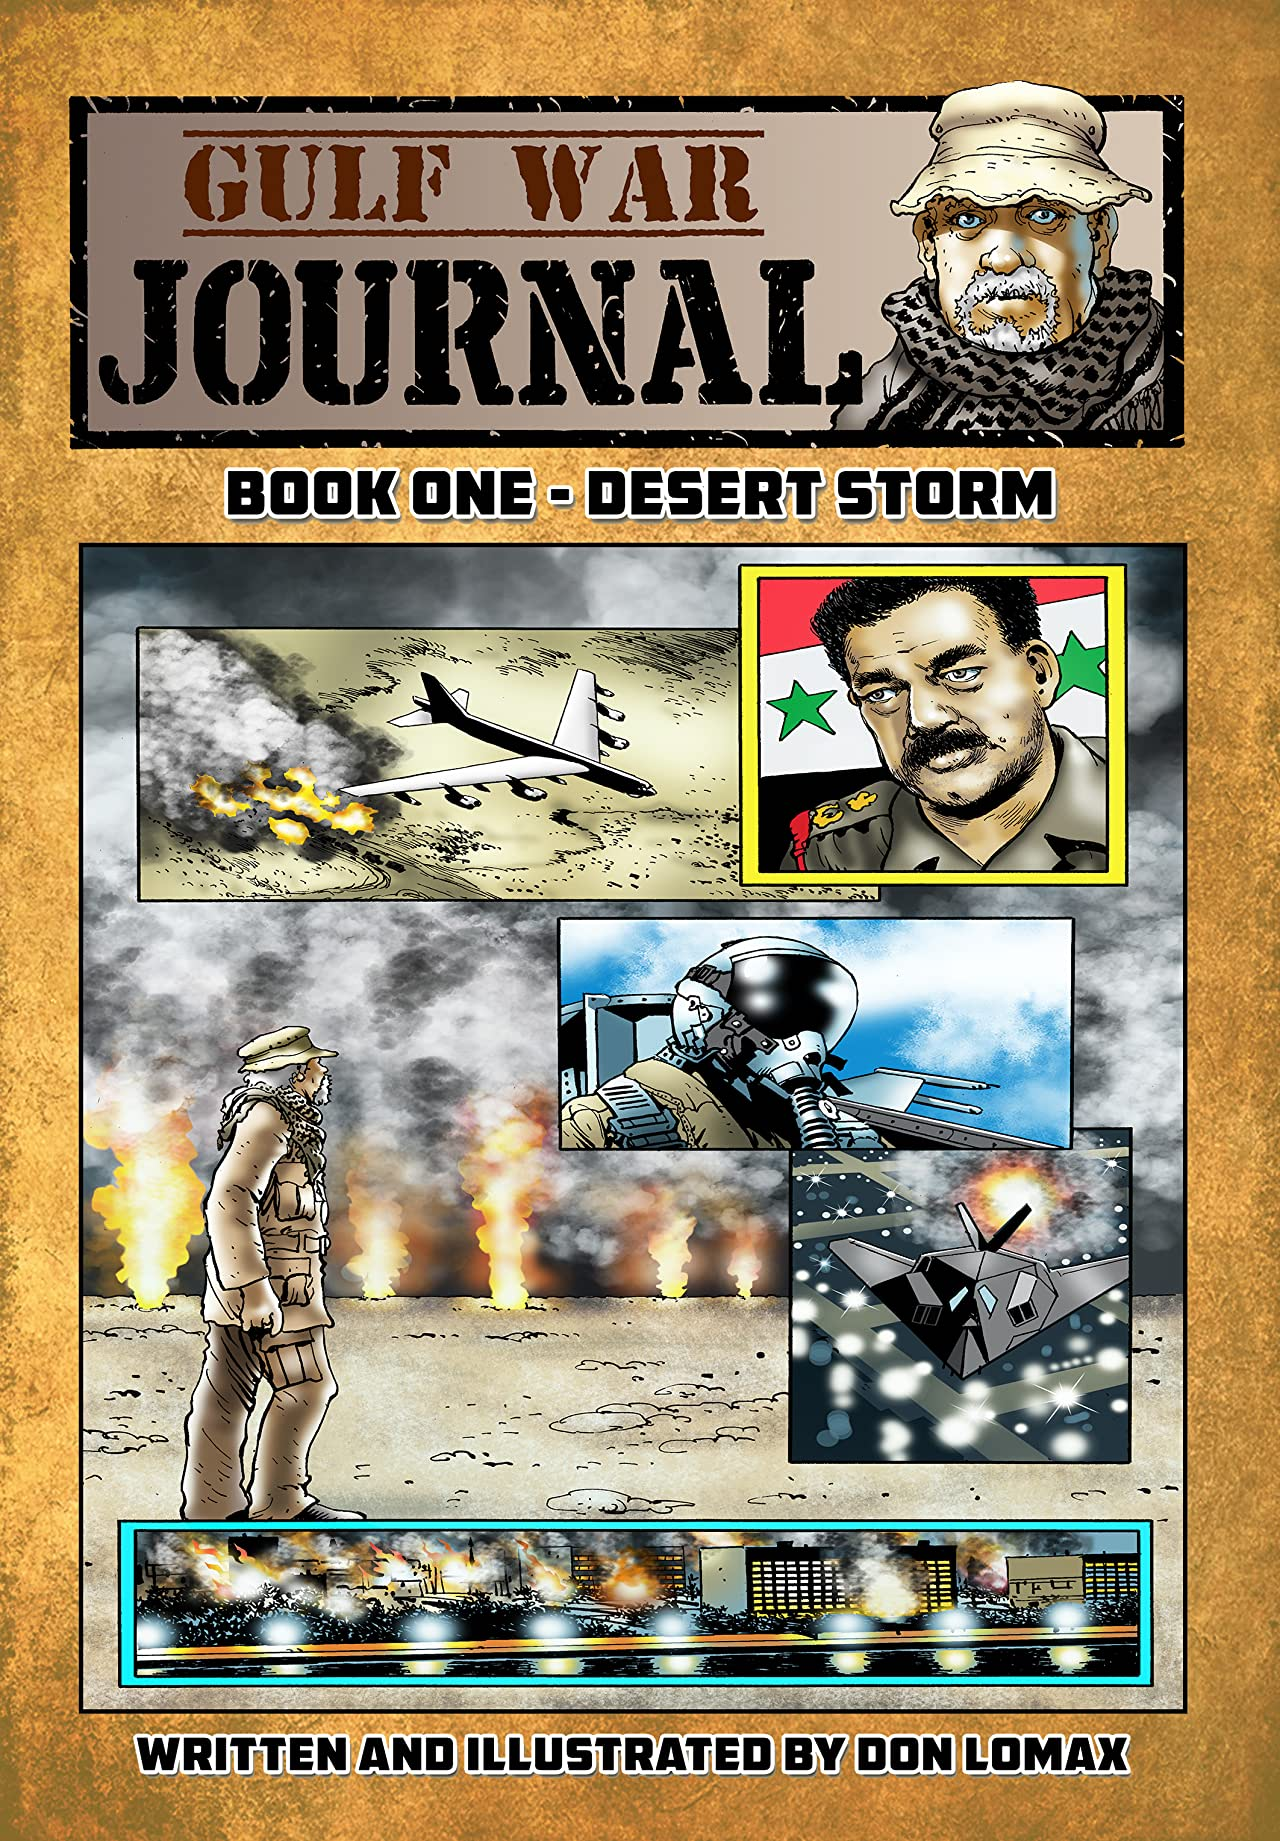 Gulf War Journal, Book One Vol. 1